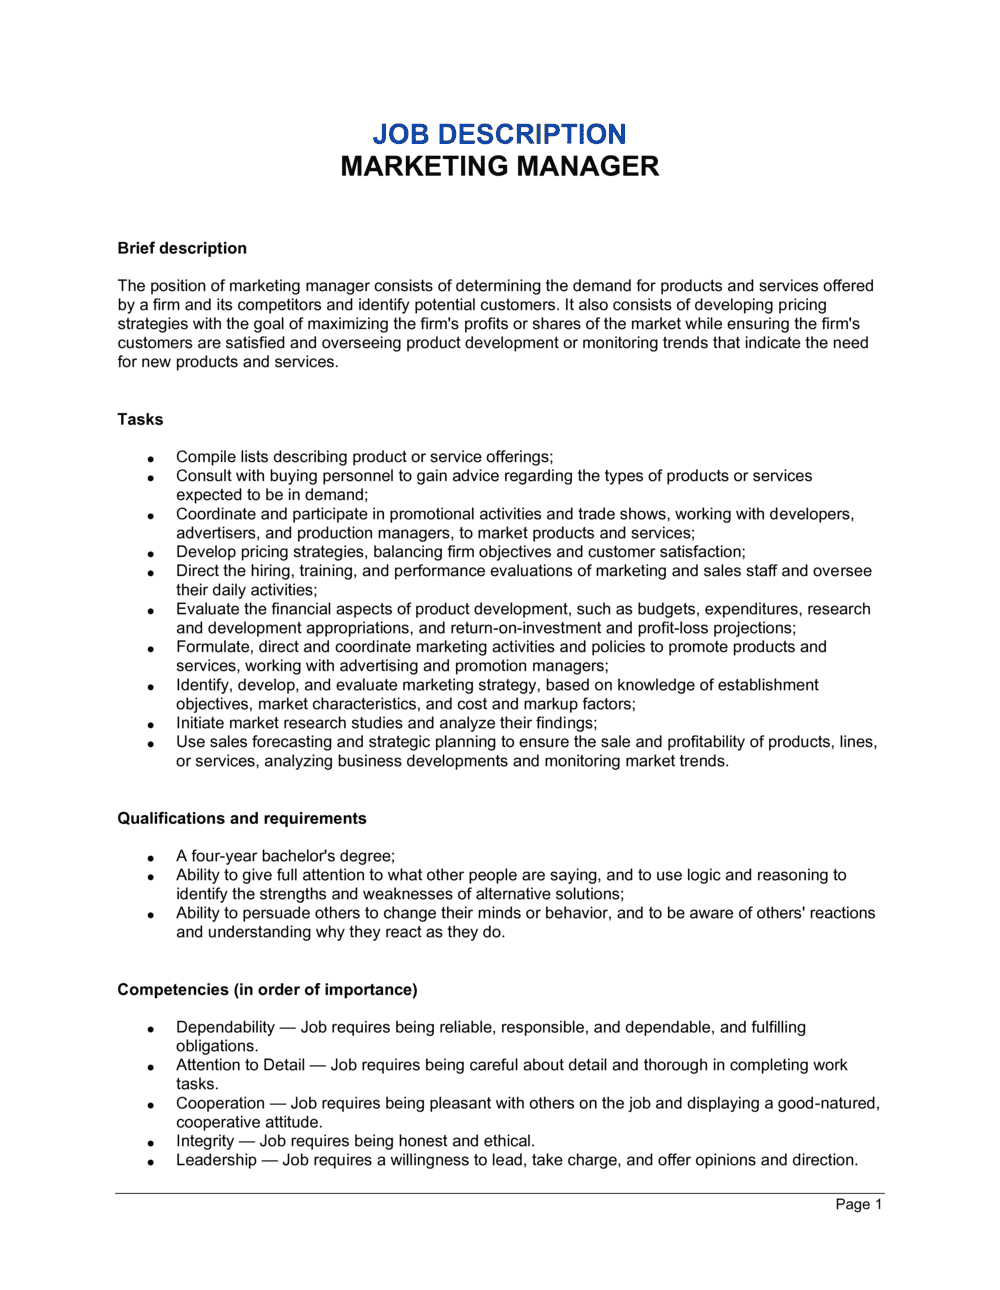 Business-in-a-Box's Marketing Manager Job Description Template